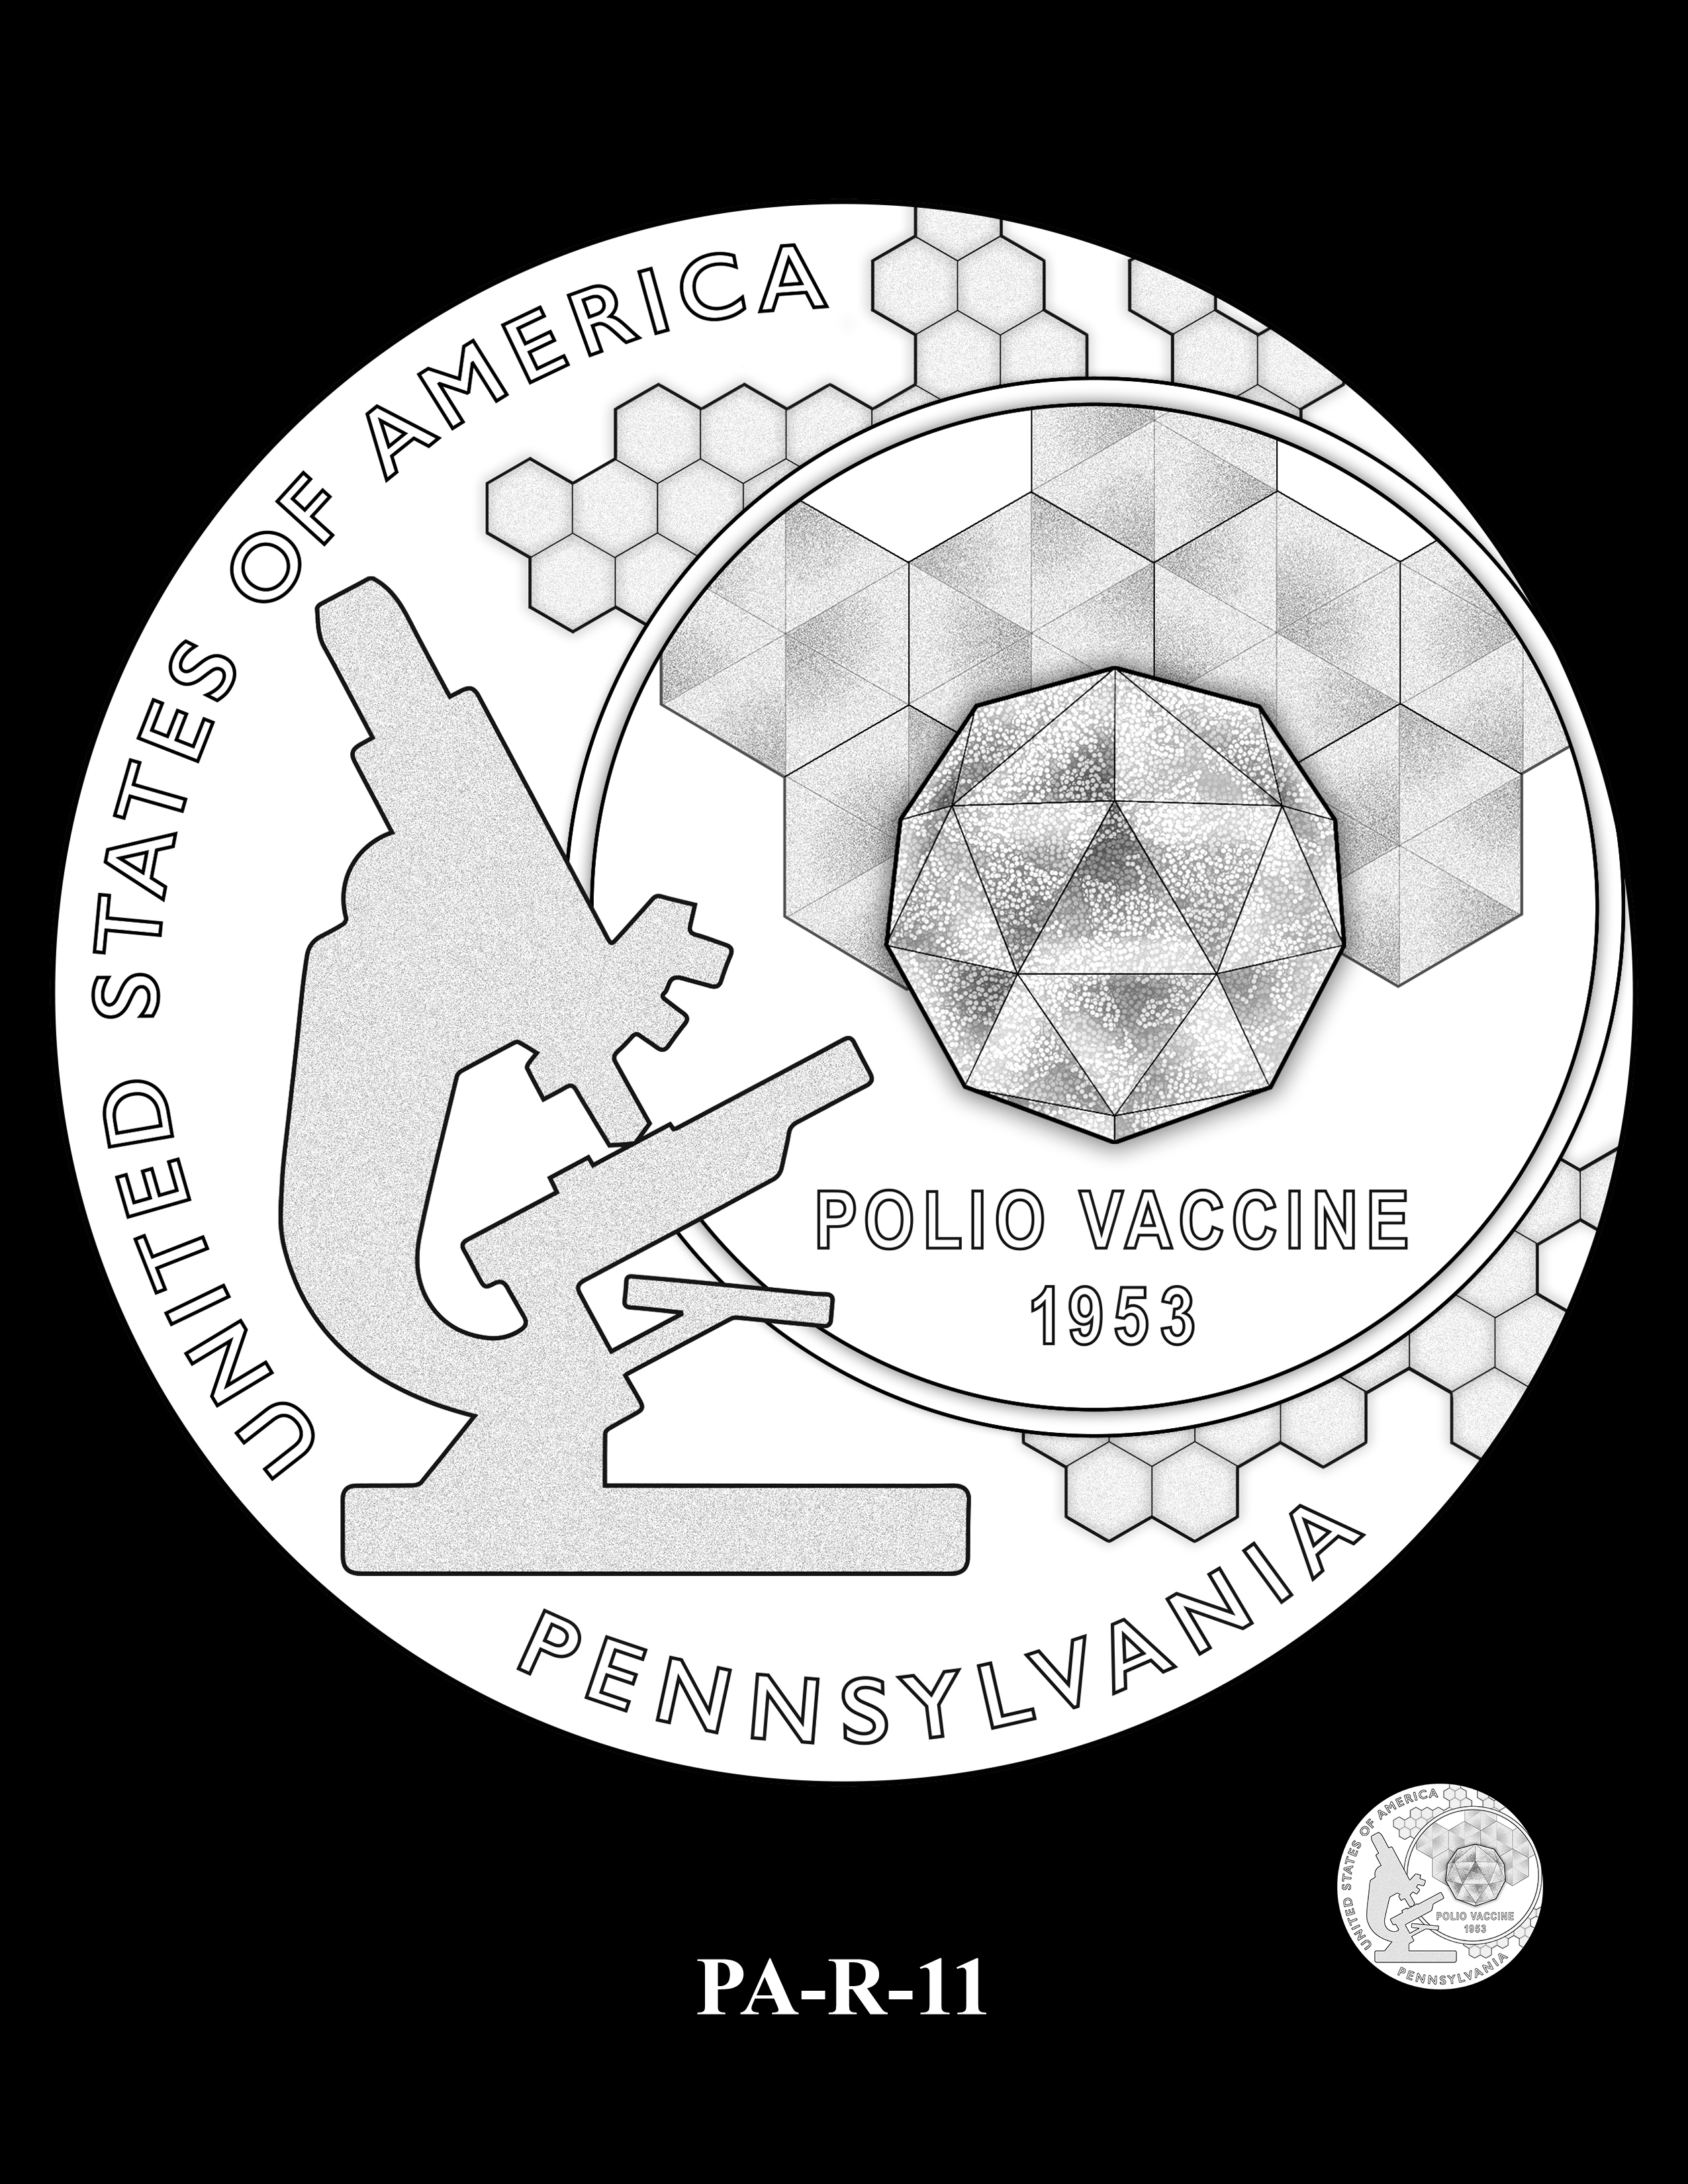 PA-R-11 -- 2019 American Innovation $1 Coin Program